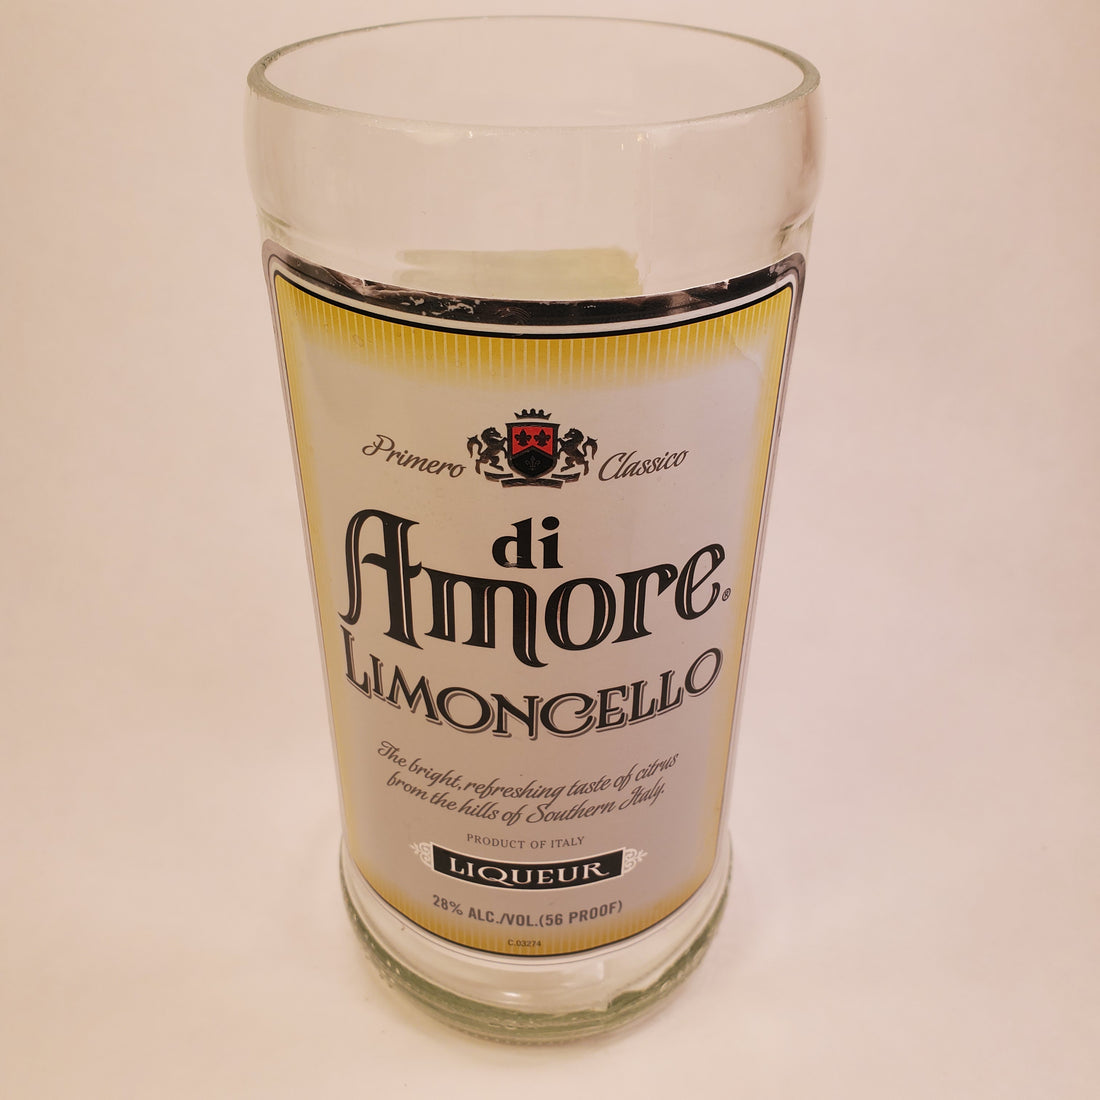 di Amore Limoncello 1L Hand Cut Upcycled Liquor Bottle Candle  - Choose Your Scent